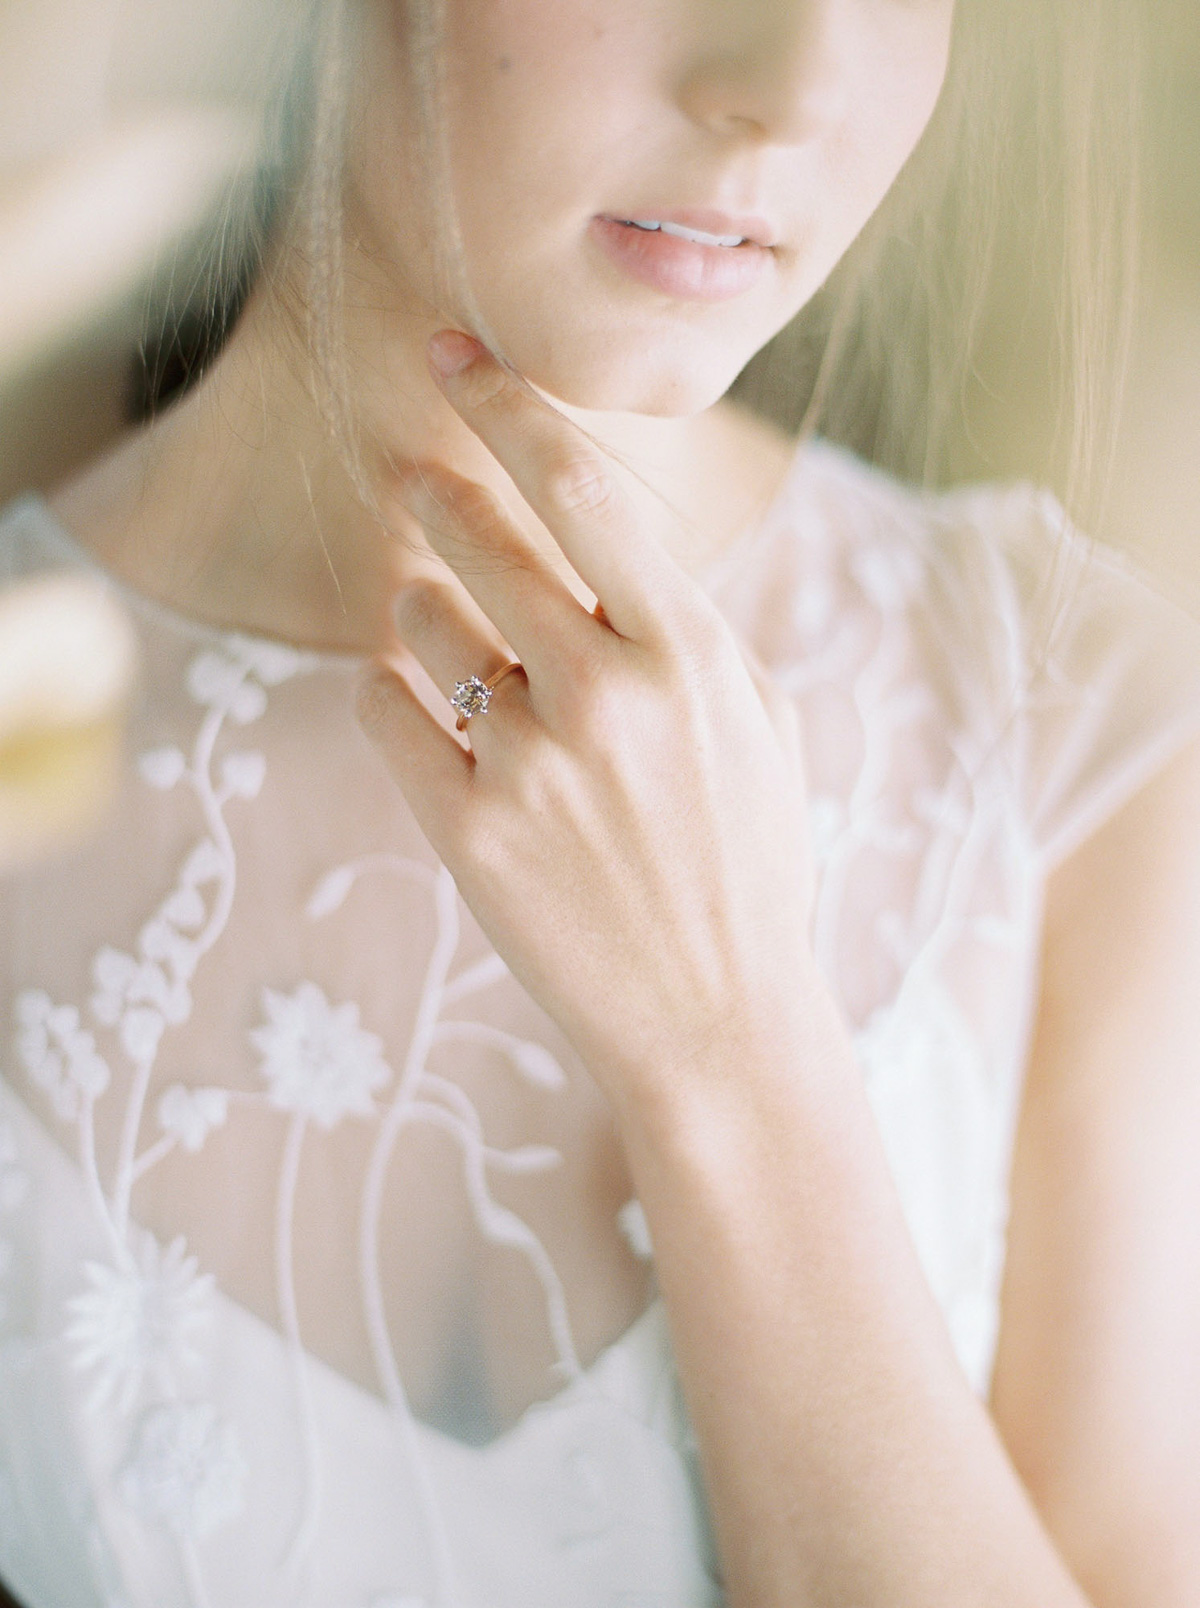 will-reid-photo-vineyard-bride-swish-list-kurtz-orchards-market-niagara-on-the-lake-wedding-editorial-19.jpg